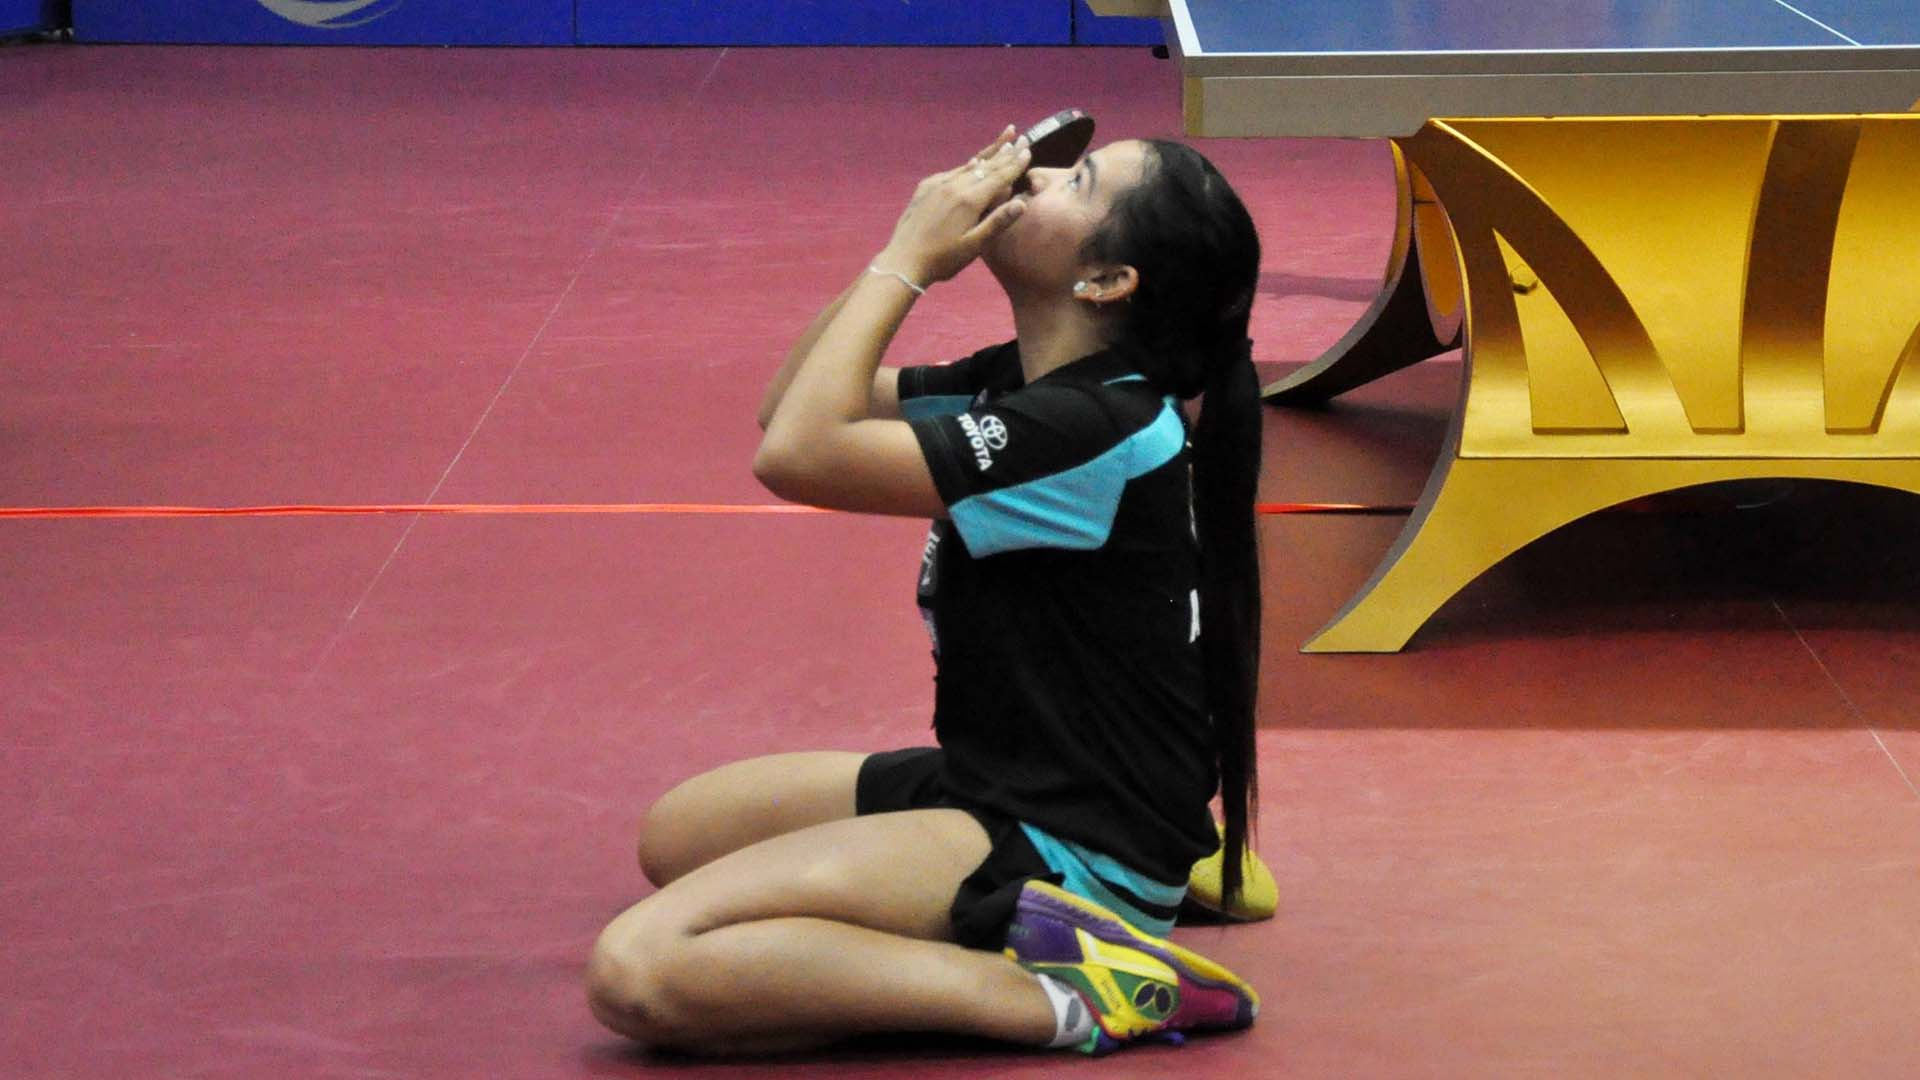 Kanak Jha For Third Time Adriana Diaz Completes Double